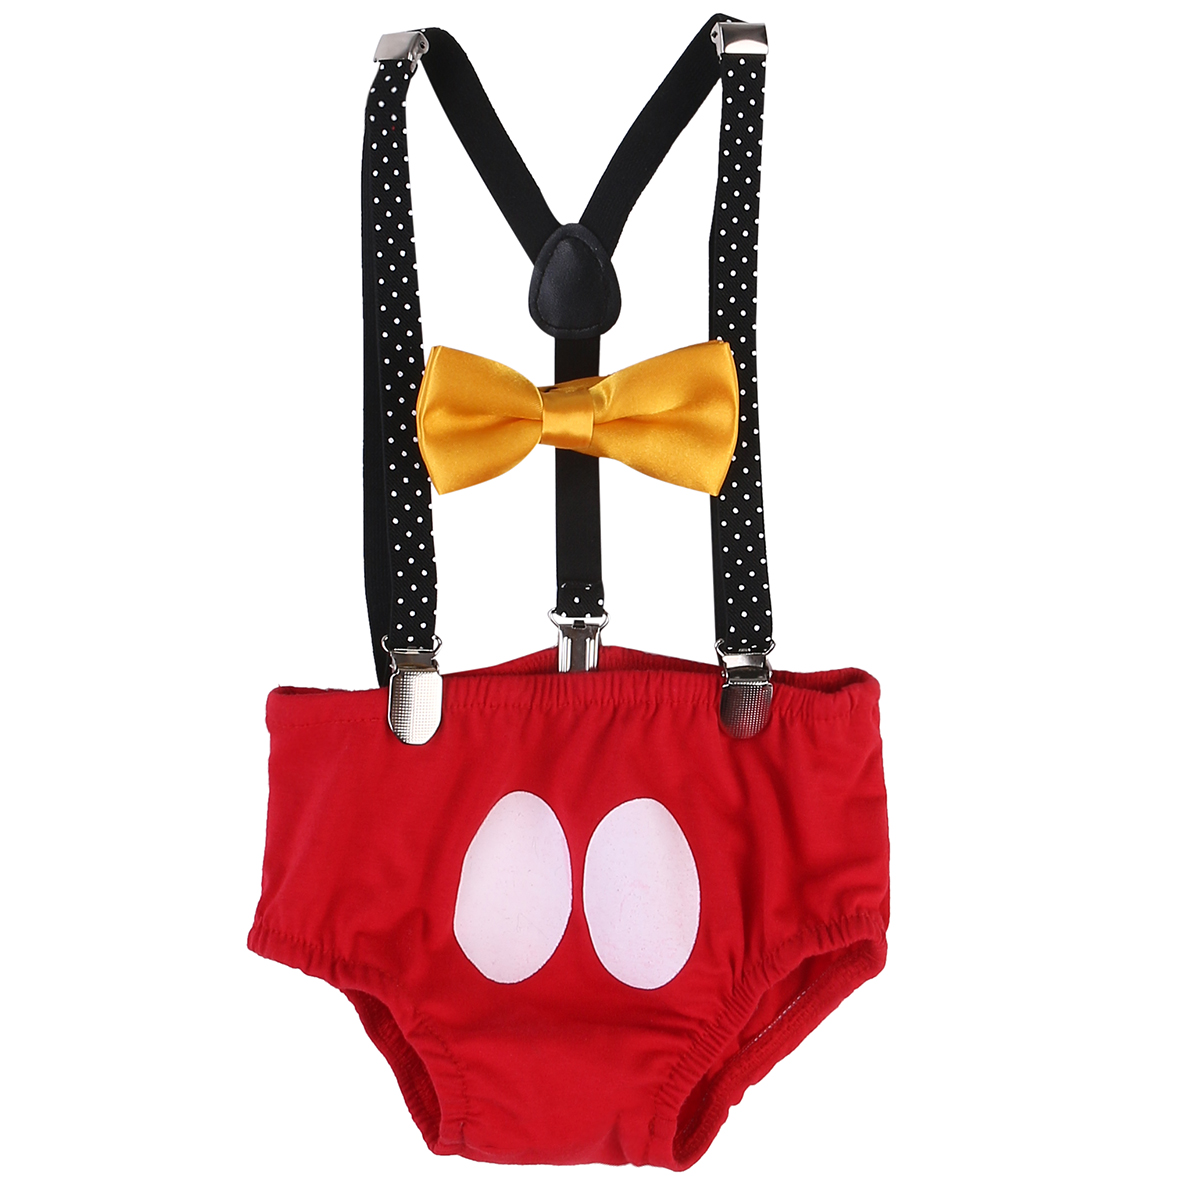 2017 Hot 2PCS Newborn Baby Boy Girl Outfit Kids Character Romper Pants+Tie Costume Birthday Cospaly Gifts